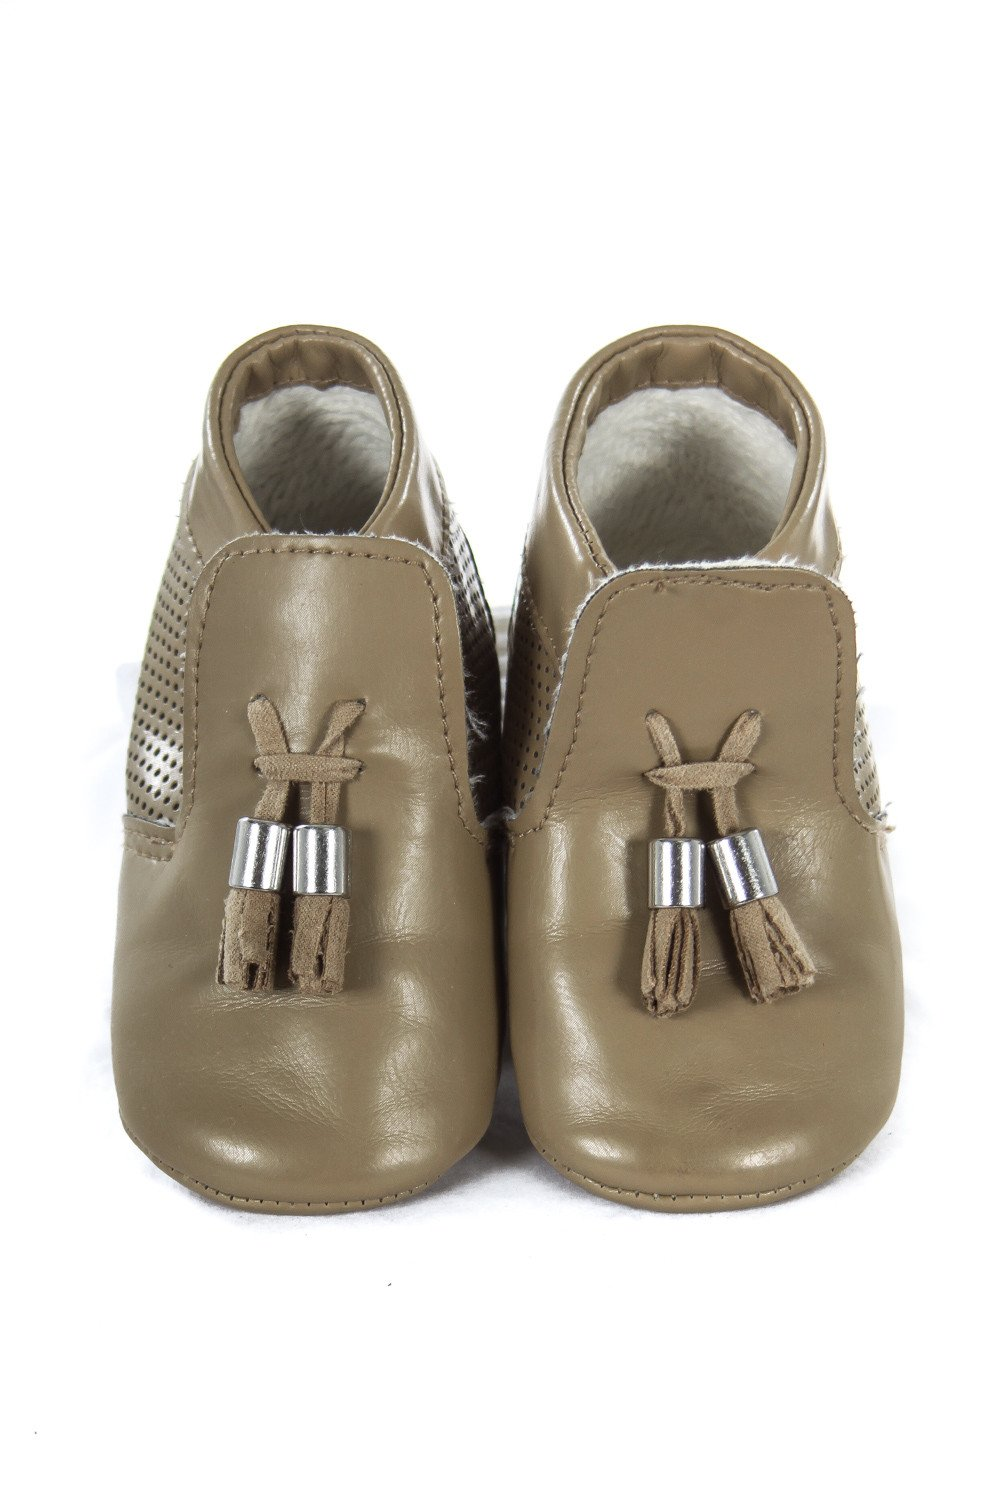 6f6afec1e1c MAYORAL BROWN LEATHER SOFT SHOES TODDLER SIZE 3.5